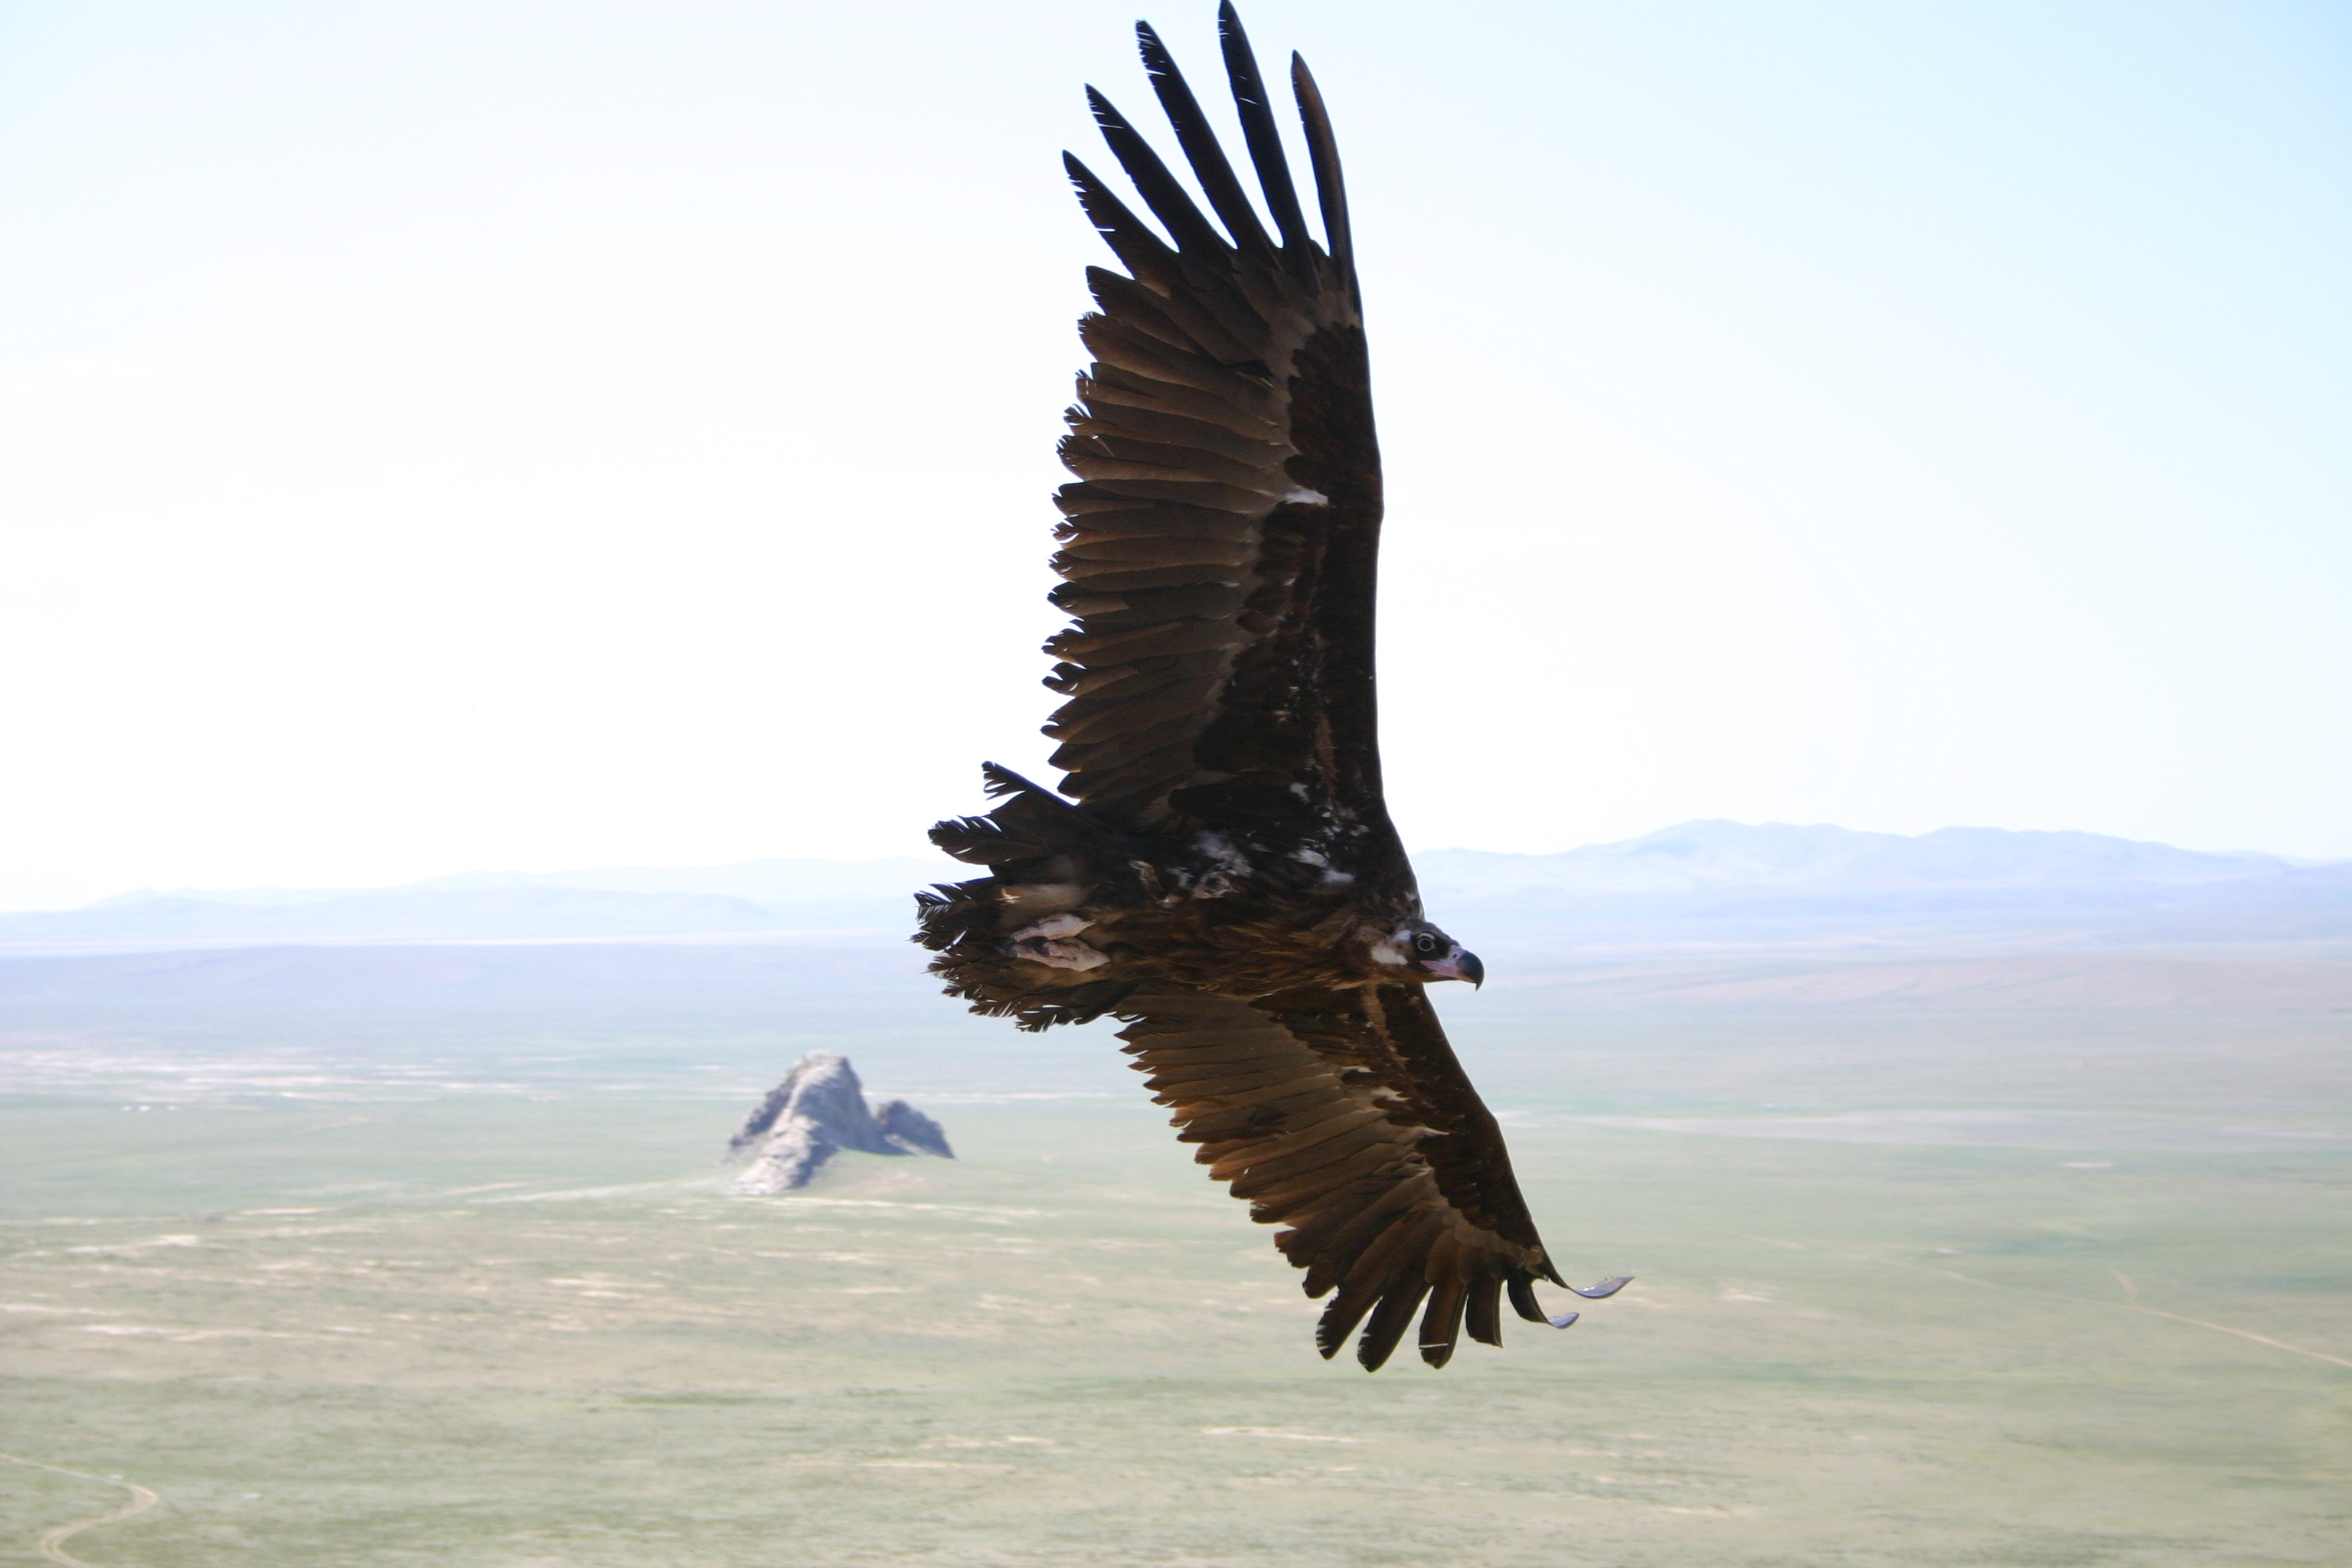 Old and new world vultures now share similar genetic profiles